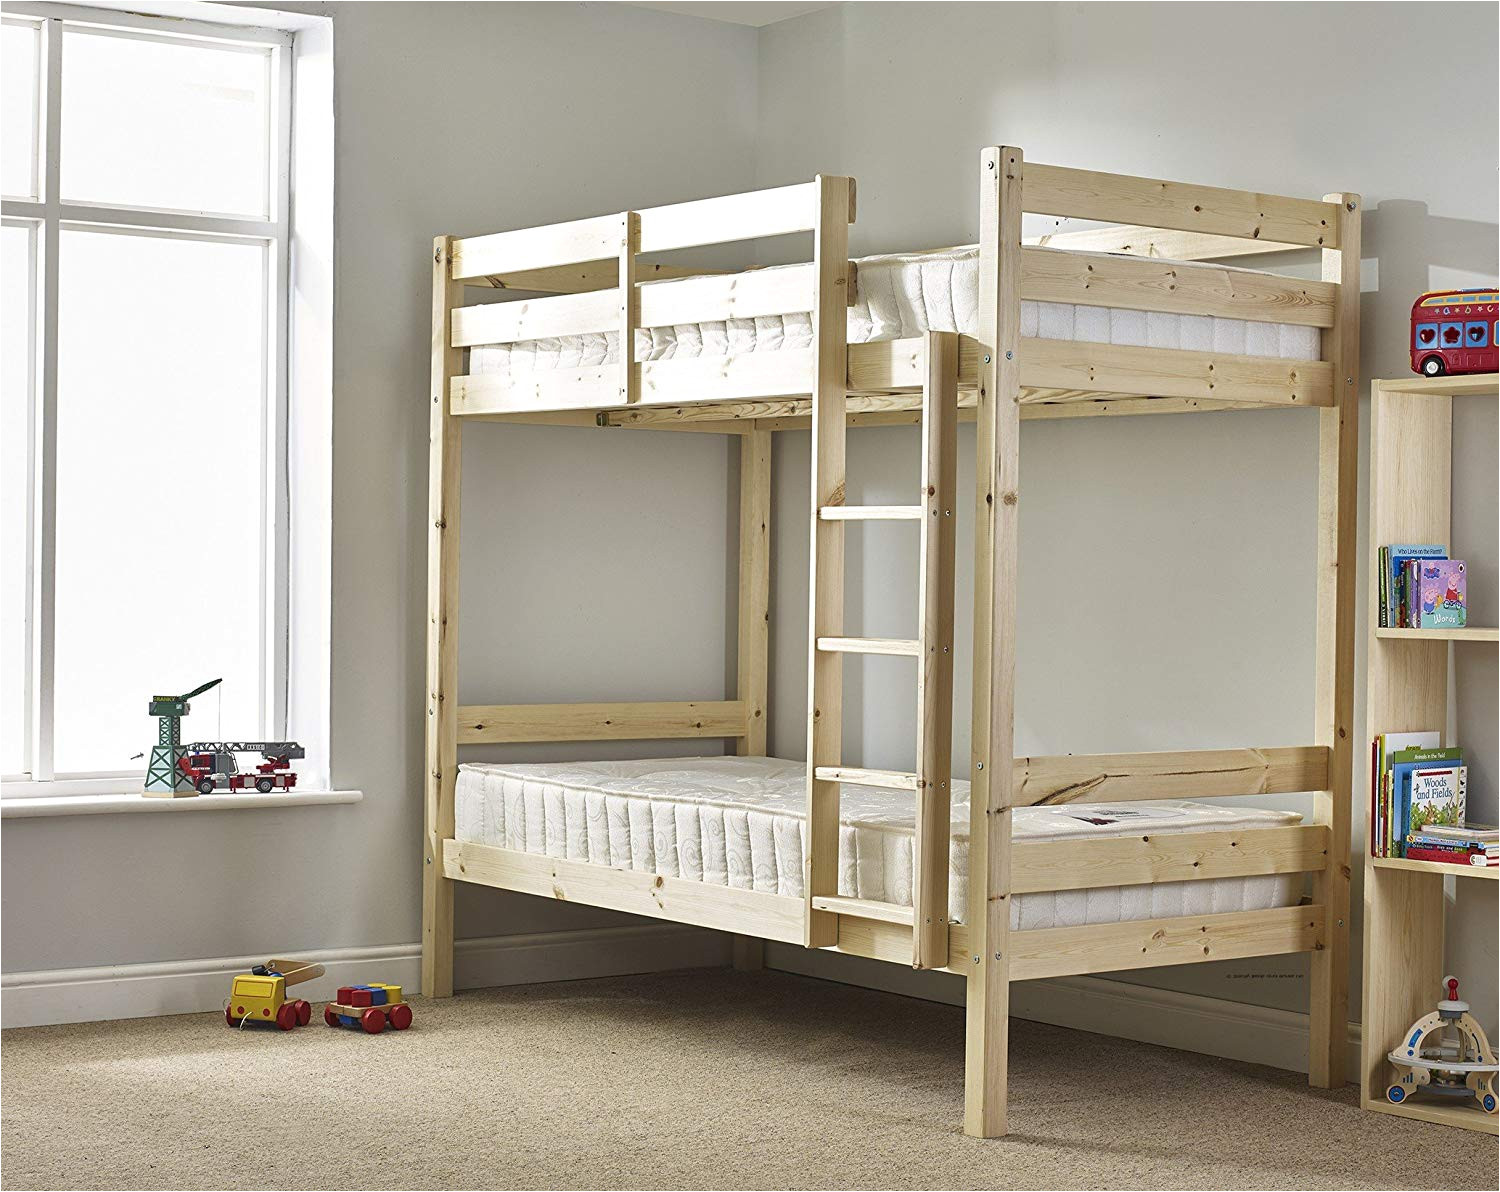 heavy duty bunk bed 3ft single solid pine bunk bed can be used by adults very strong amazon co uk kitchen home